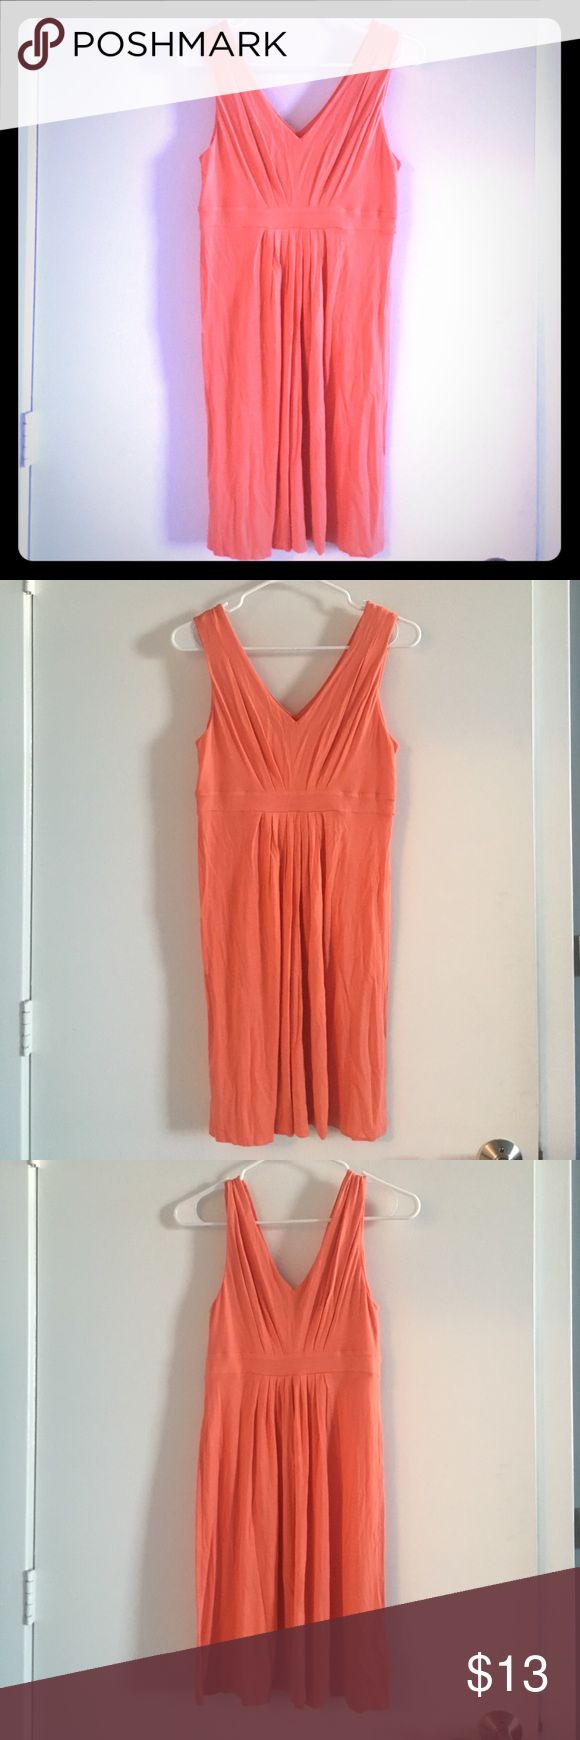 "Ann Taylor LOFT coral sundress XS LOFT XS sundress. Pinkish orange peach/ salmon/ coral color. Very comfy especially on a hot day. Good used condition. I am 5'2"" and it hits just above my knee. Tons of life left- a tiny bit of pilling but nothing noticeable. Empire waist with very forgiving breezy skirt. LOFT Dresses"